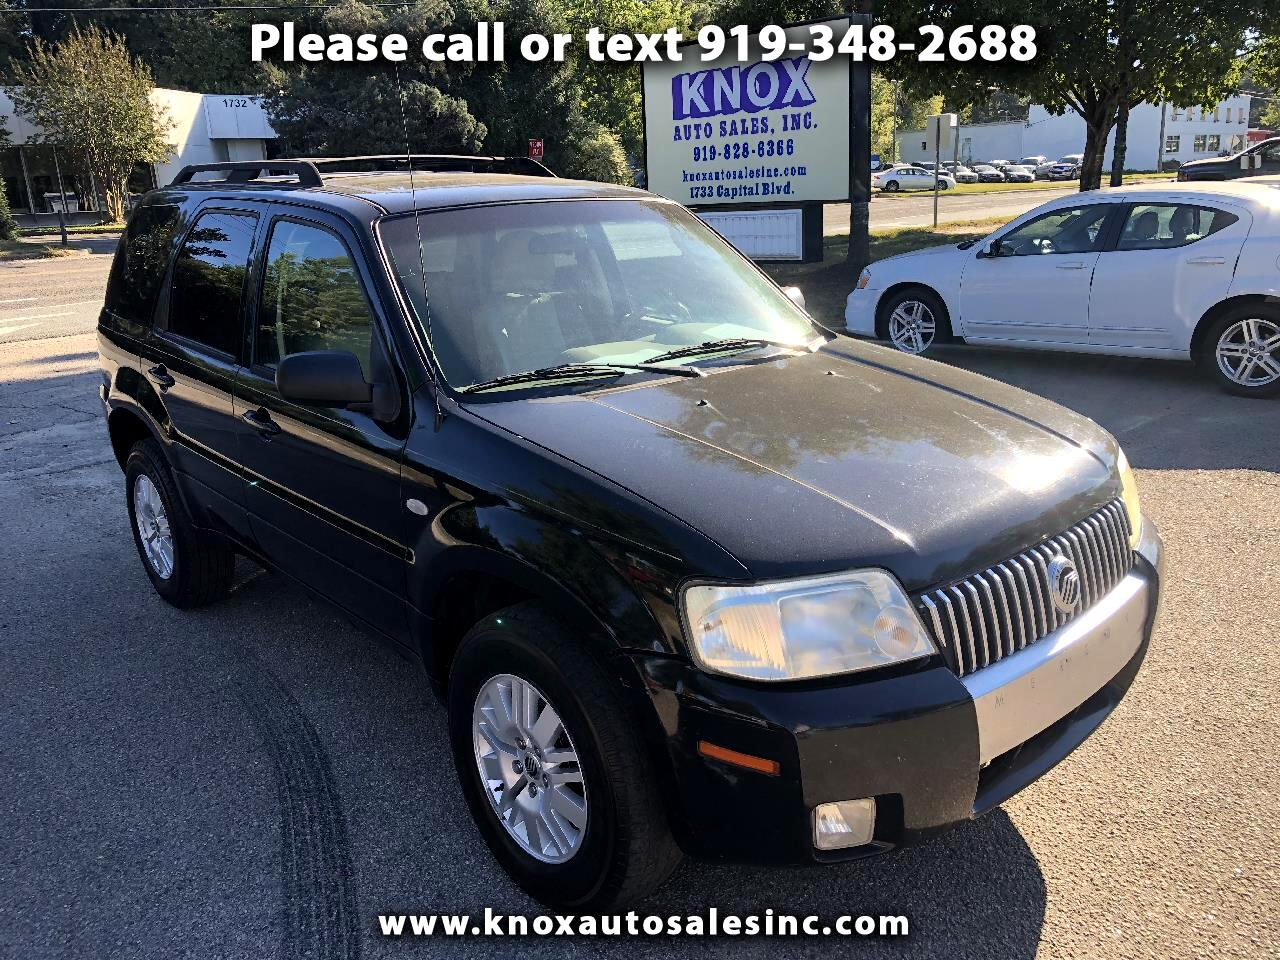 2007 Mercury Mariner Luxury 2WD